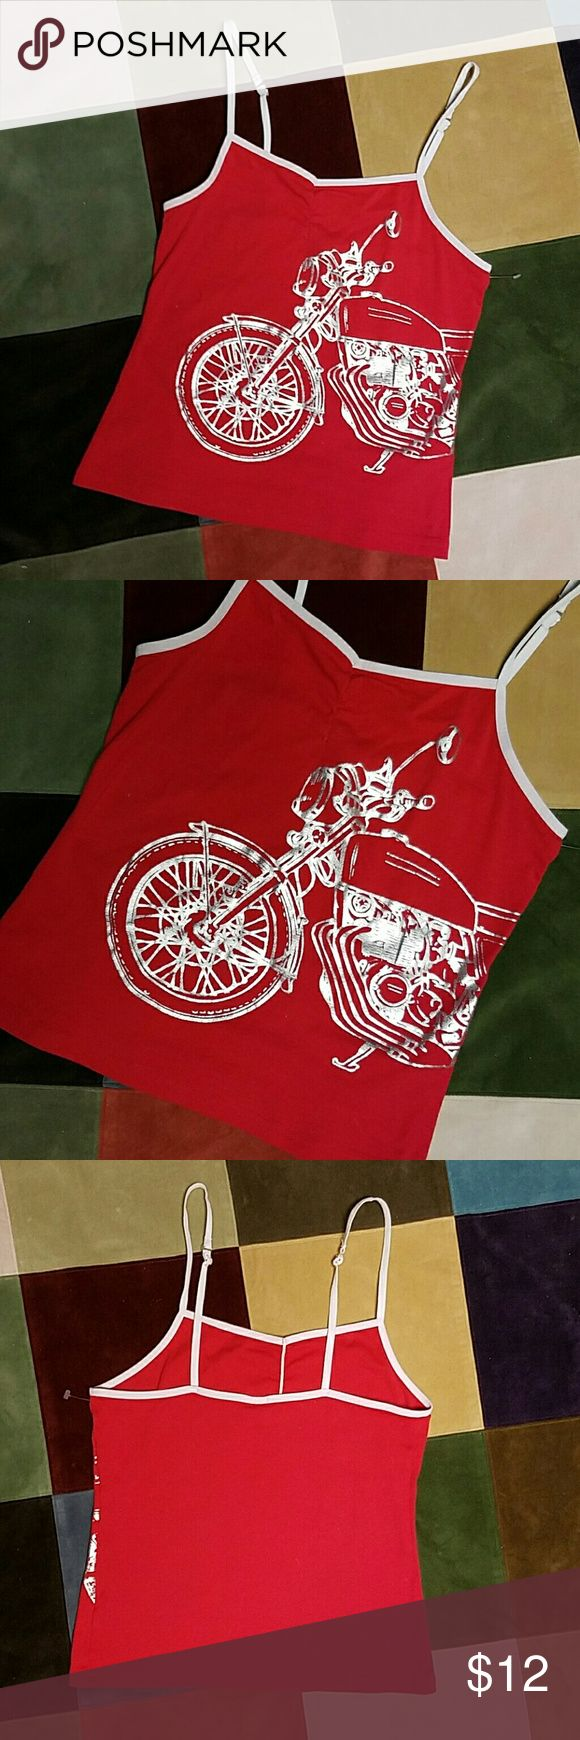 """Red true red Motorcycle Camisole Cami Shirt Top M Red cami trimmed with adjustable white stretchy Spaghetti straps.  Silver Motorcycle print 100% Cotton with stretchy trim. Size M Measures 28"""" bust edge to edge lying flat,  21"""" overall length from shoulder to bottom. Unknown  Tops Camisoles"""